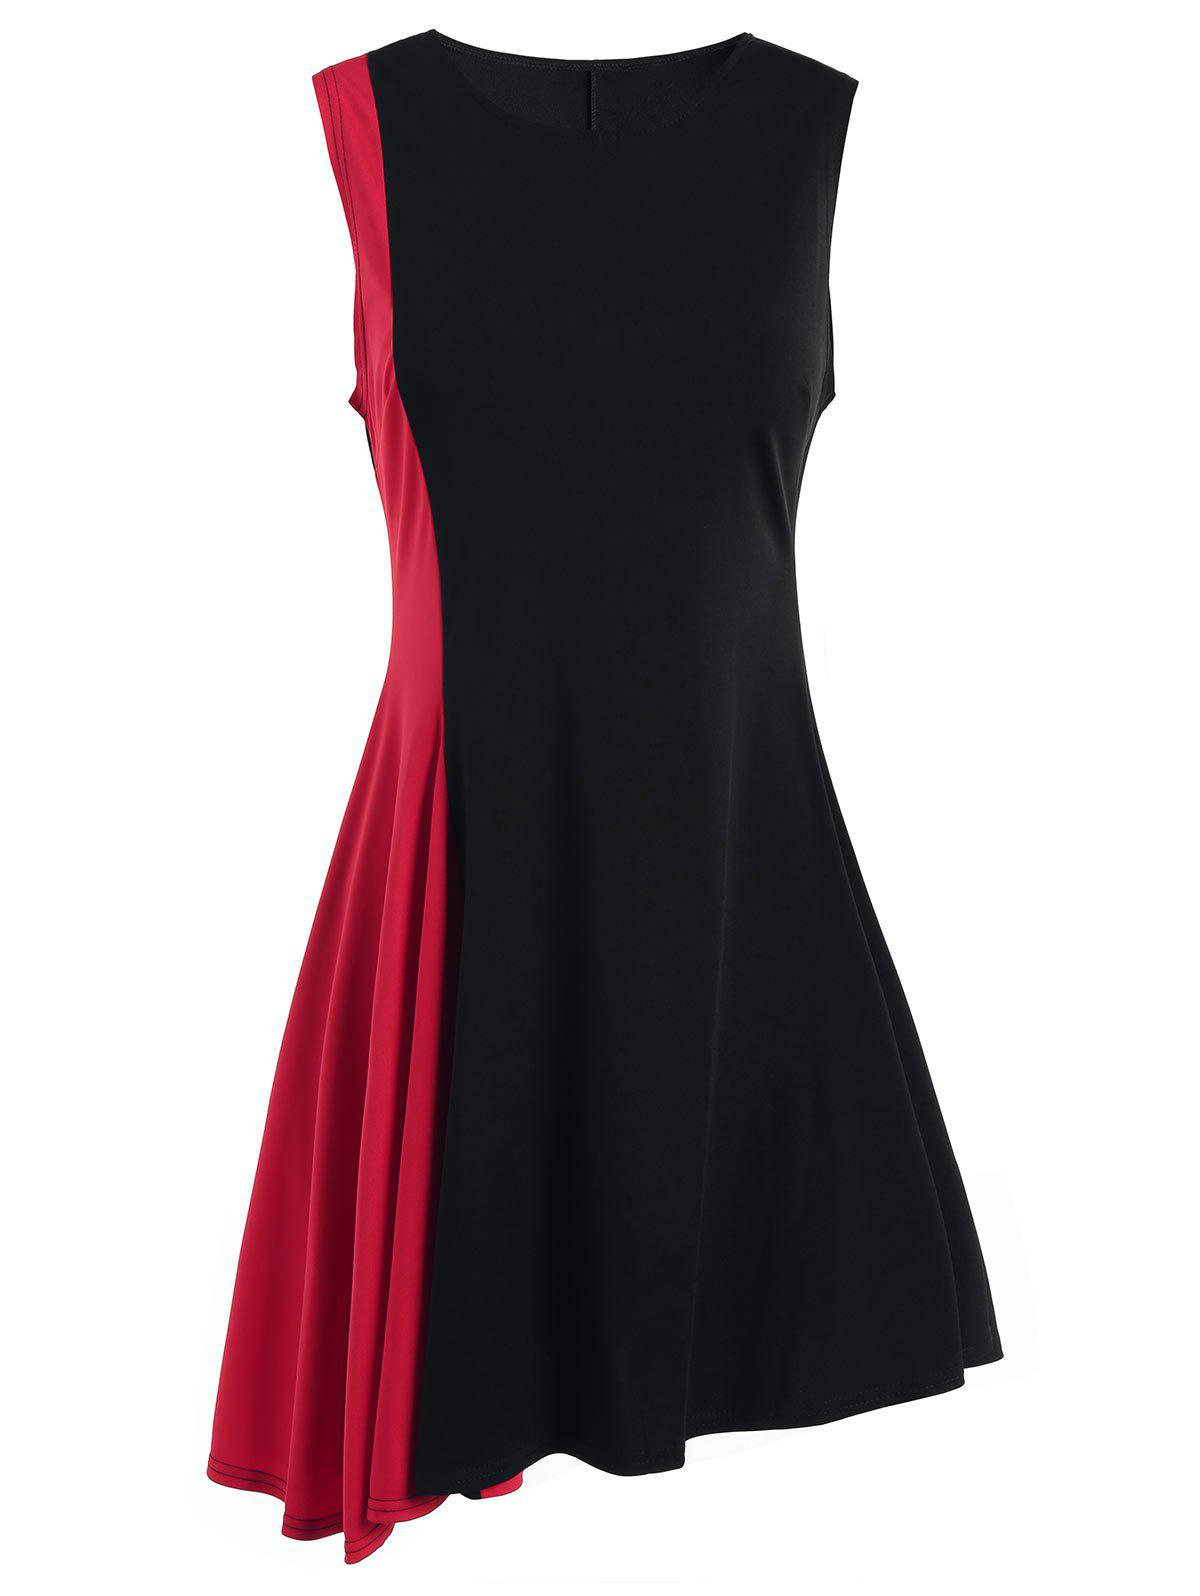 Two Tone A Line Sleeveless Dress - RED XL